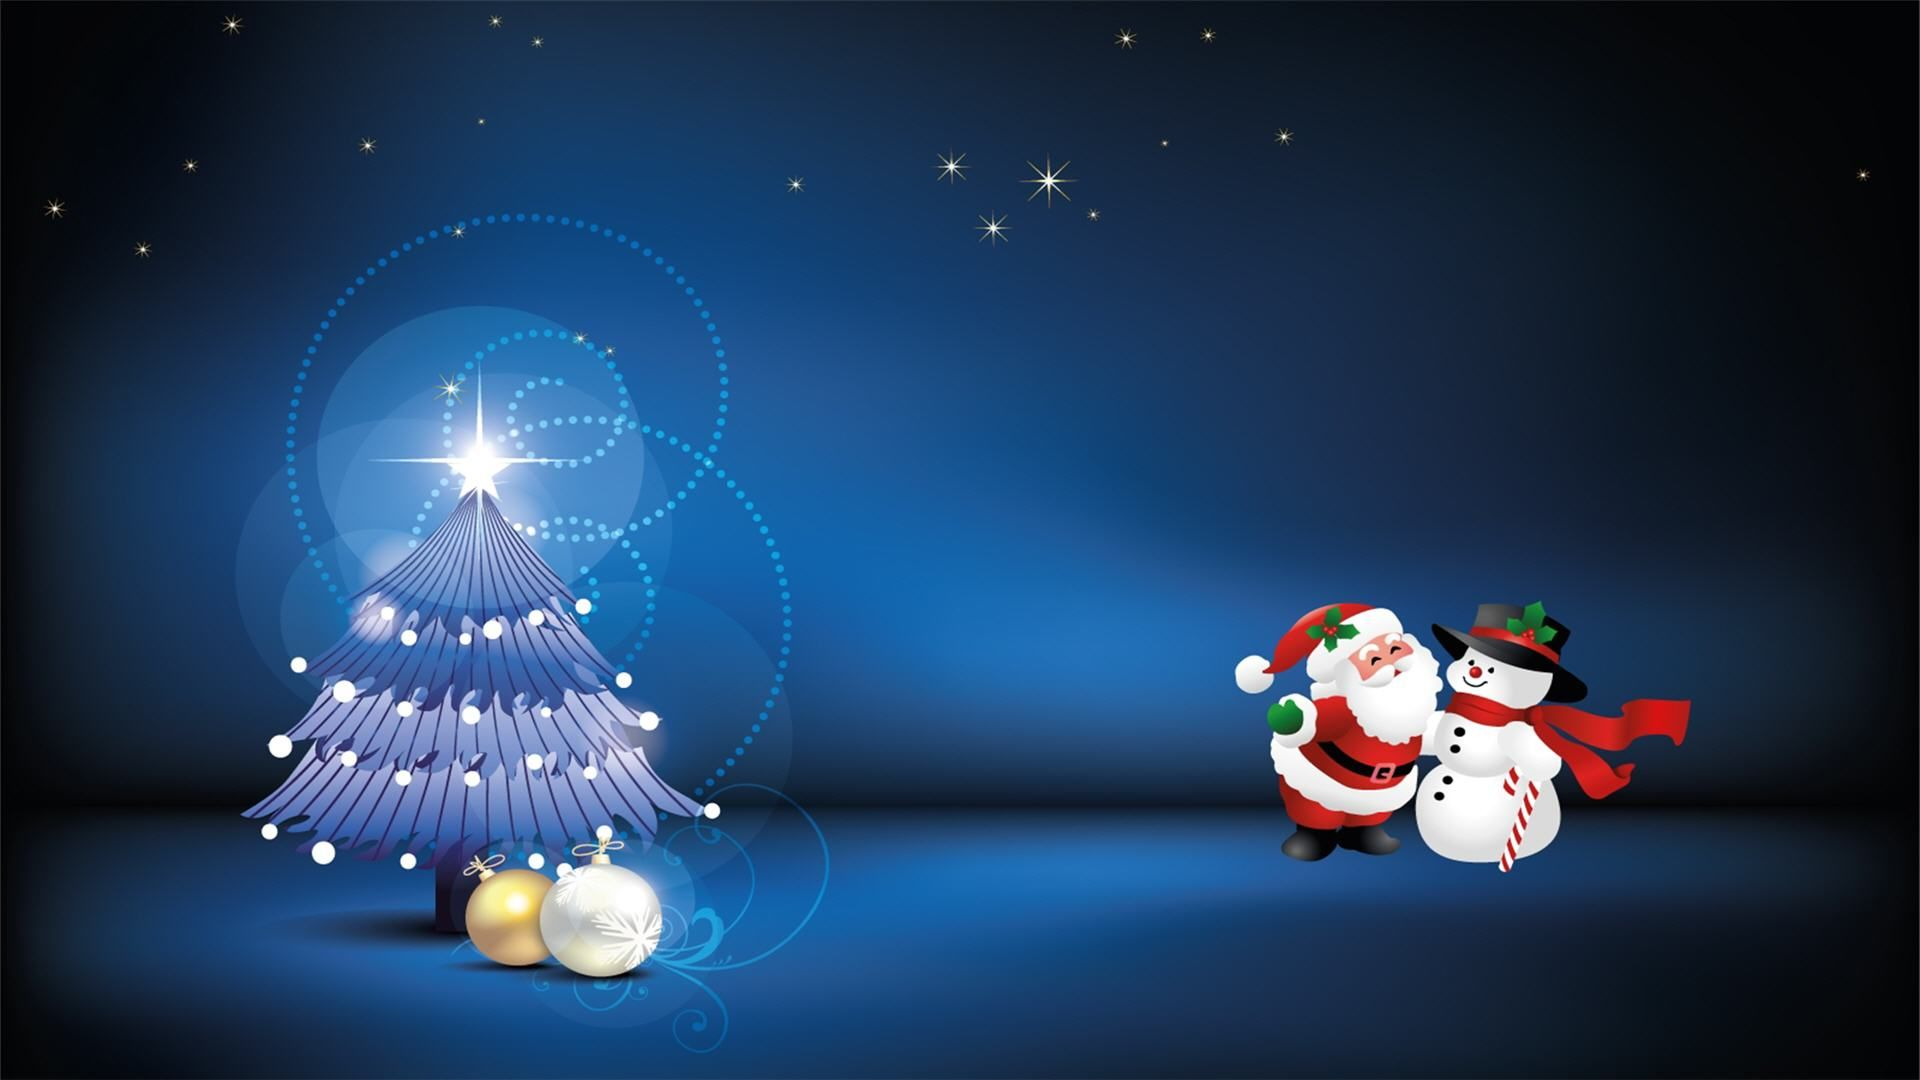 animated-christmas-hd-wallpapers-2 | animated christmas hd